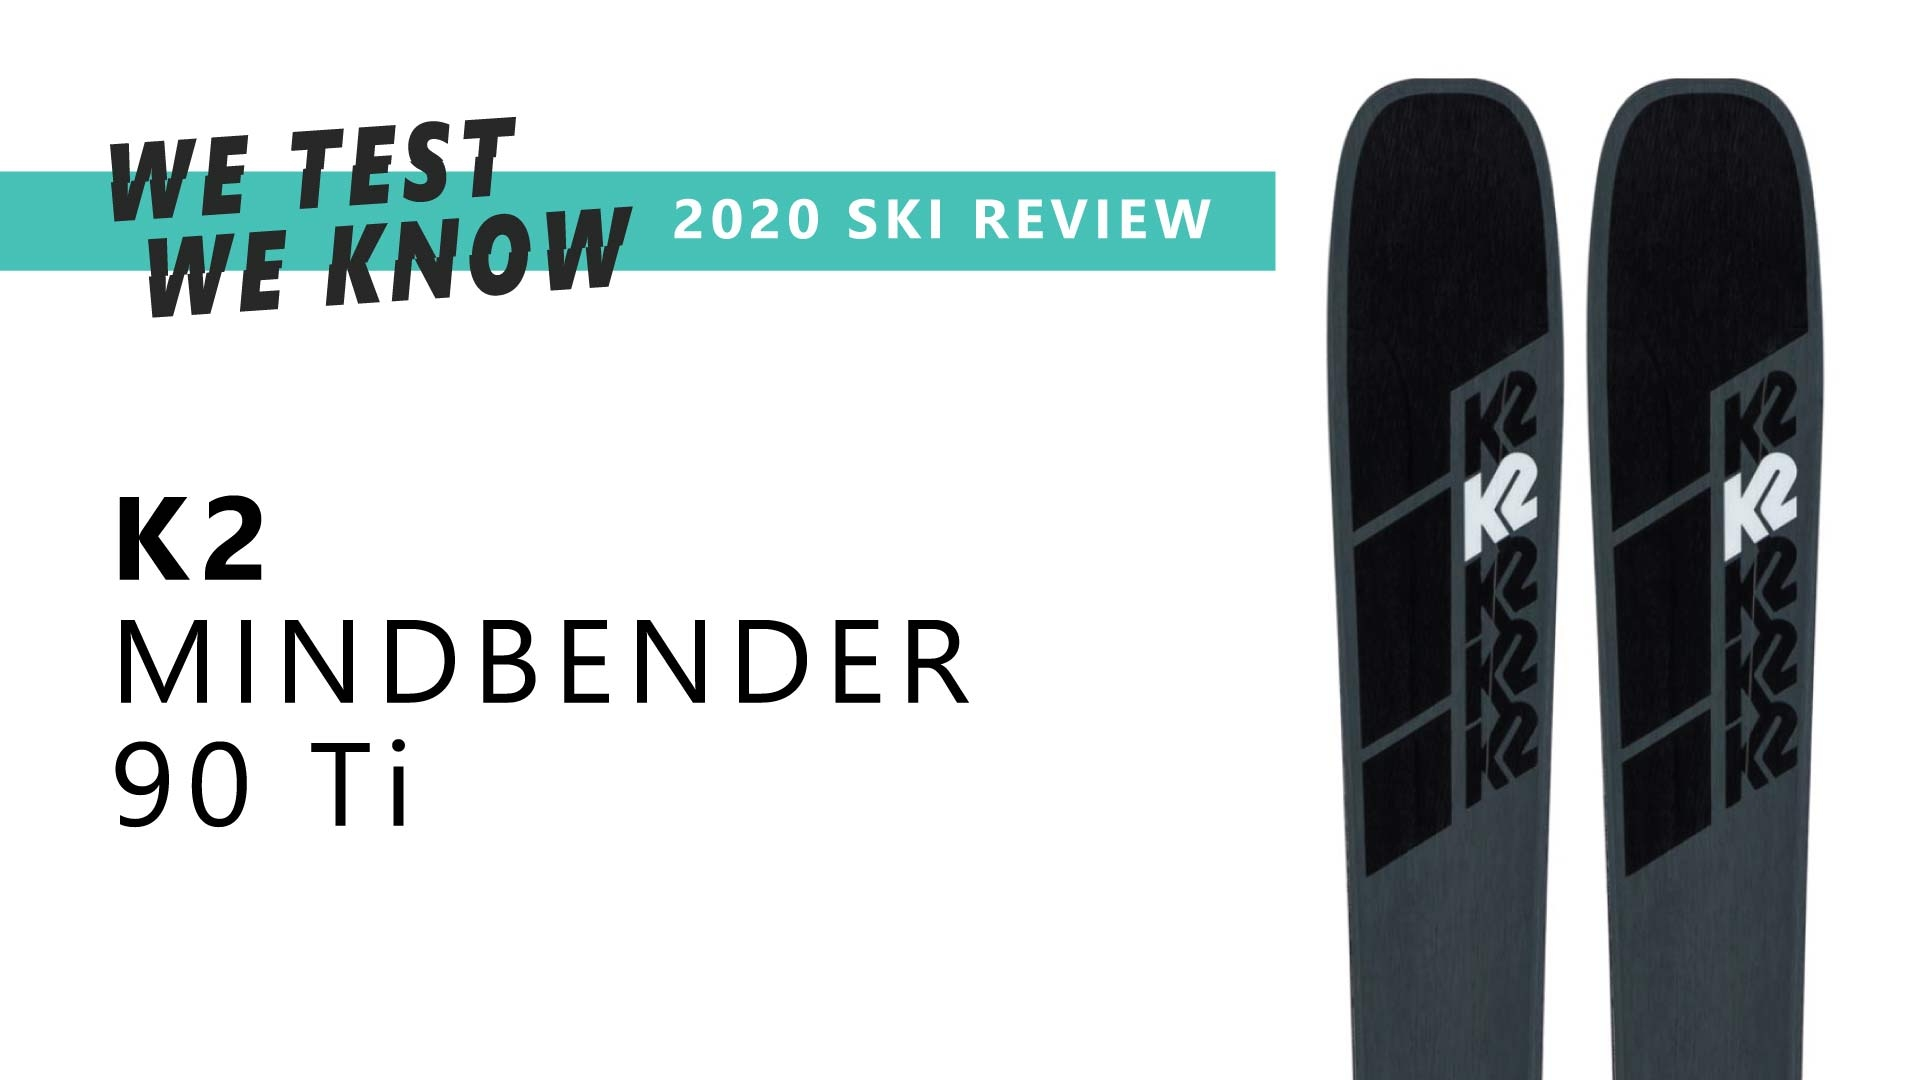 K2 Mindbender 90 Ti - 2020 Ski Review